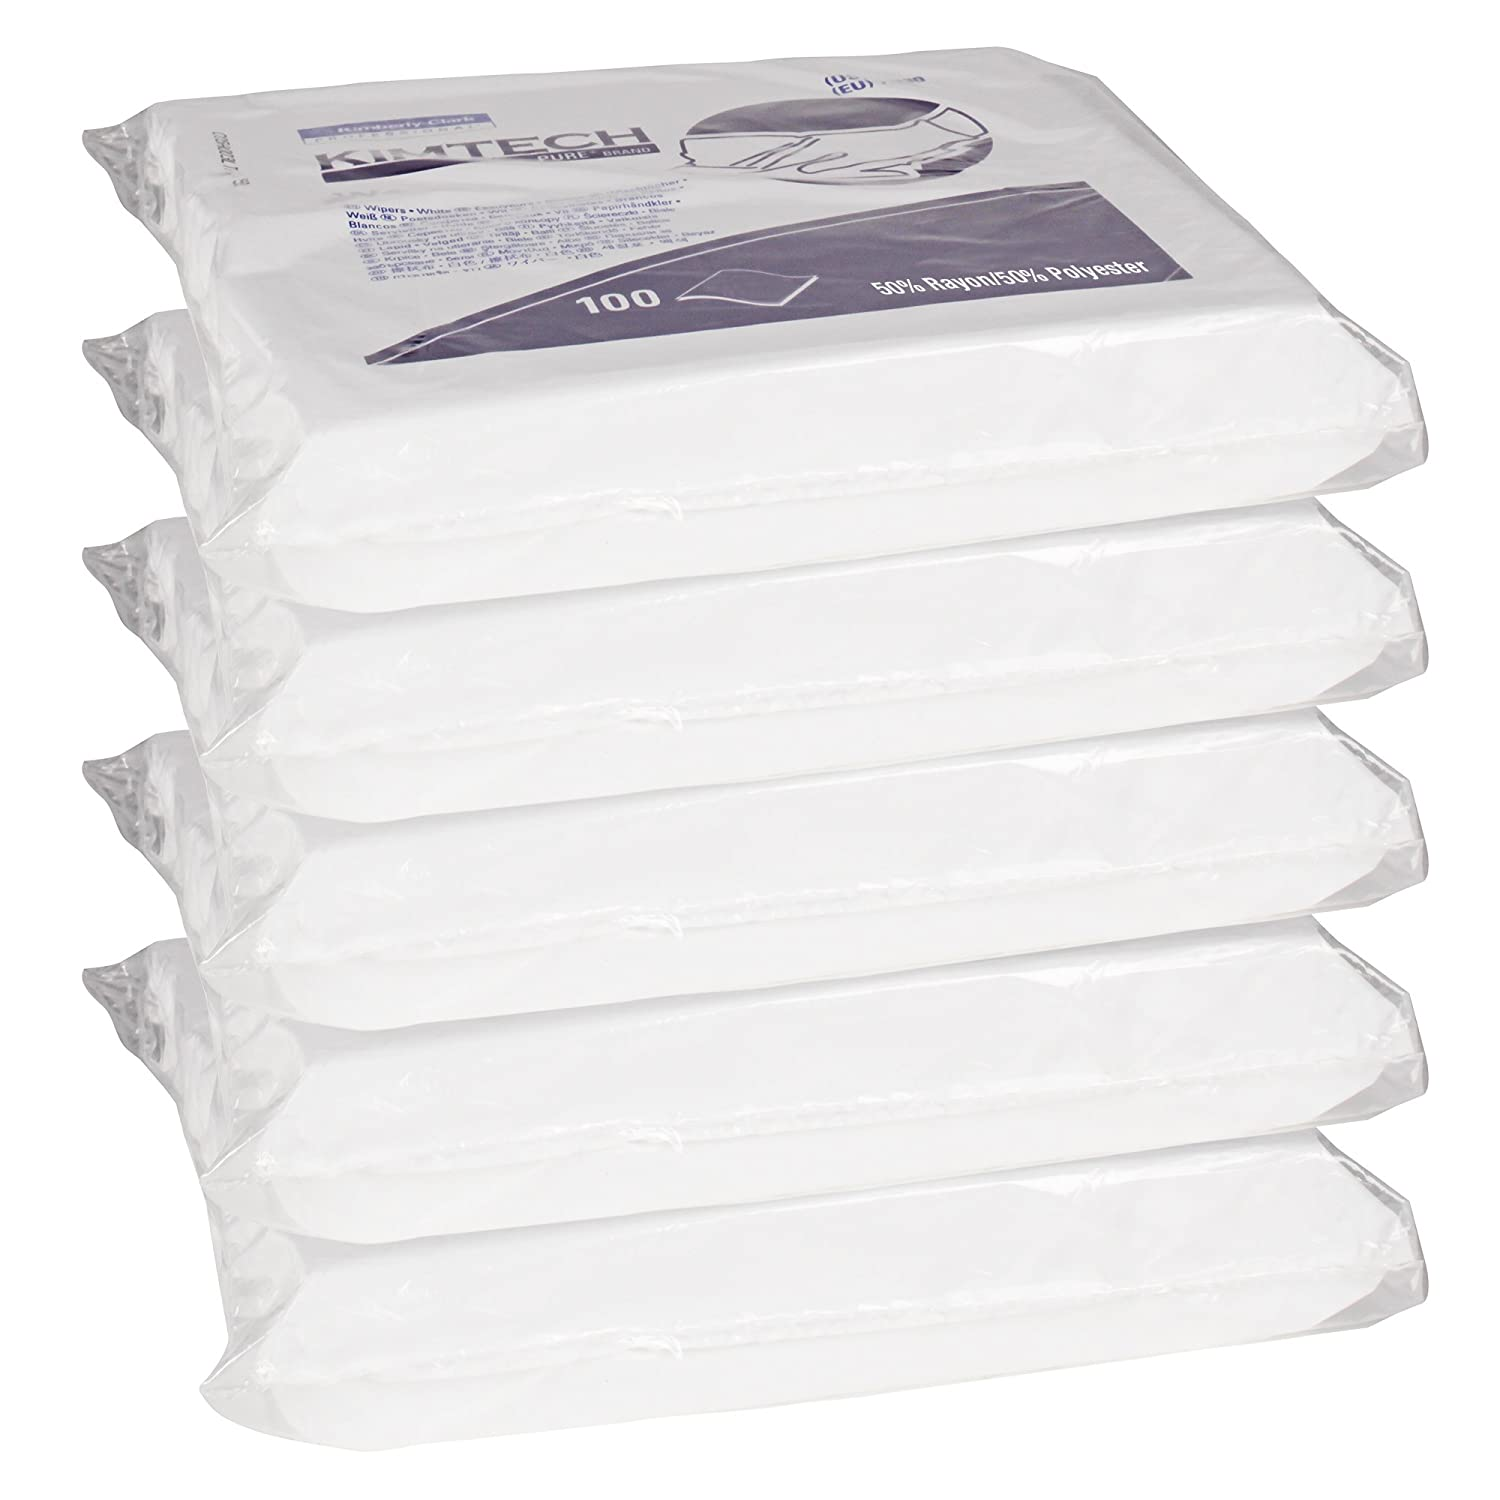 """Double Bag White 06179 Kimtech Pure W5 Dry Wipers 9/"""" x 9/"""" Case Liner 500 per case 5 Bags of 100 Wipes//Case"""